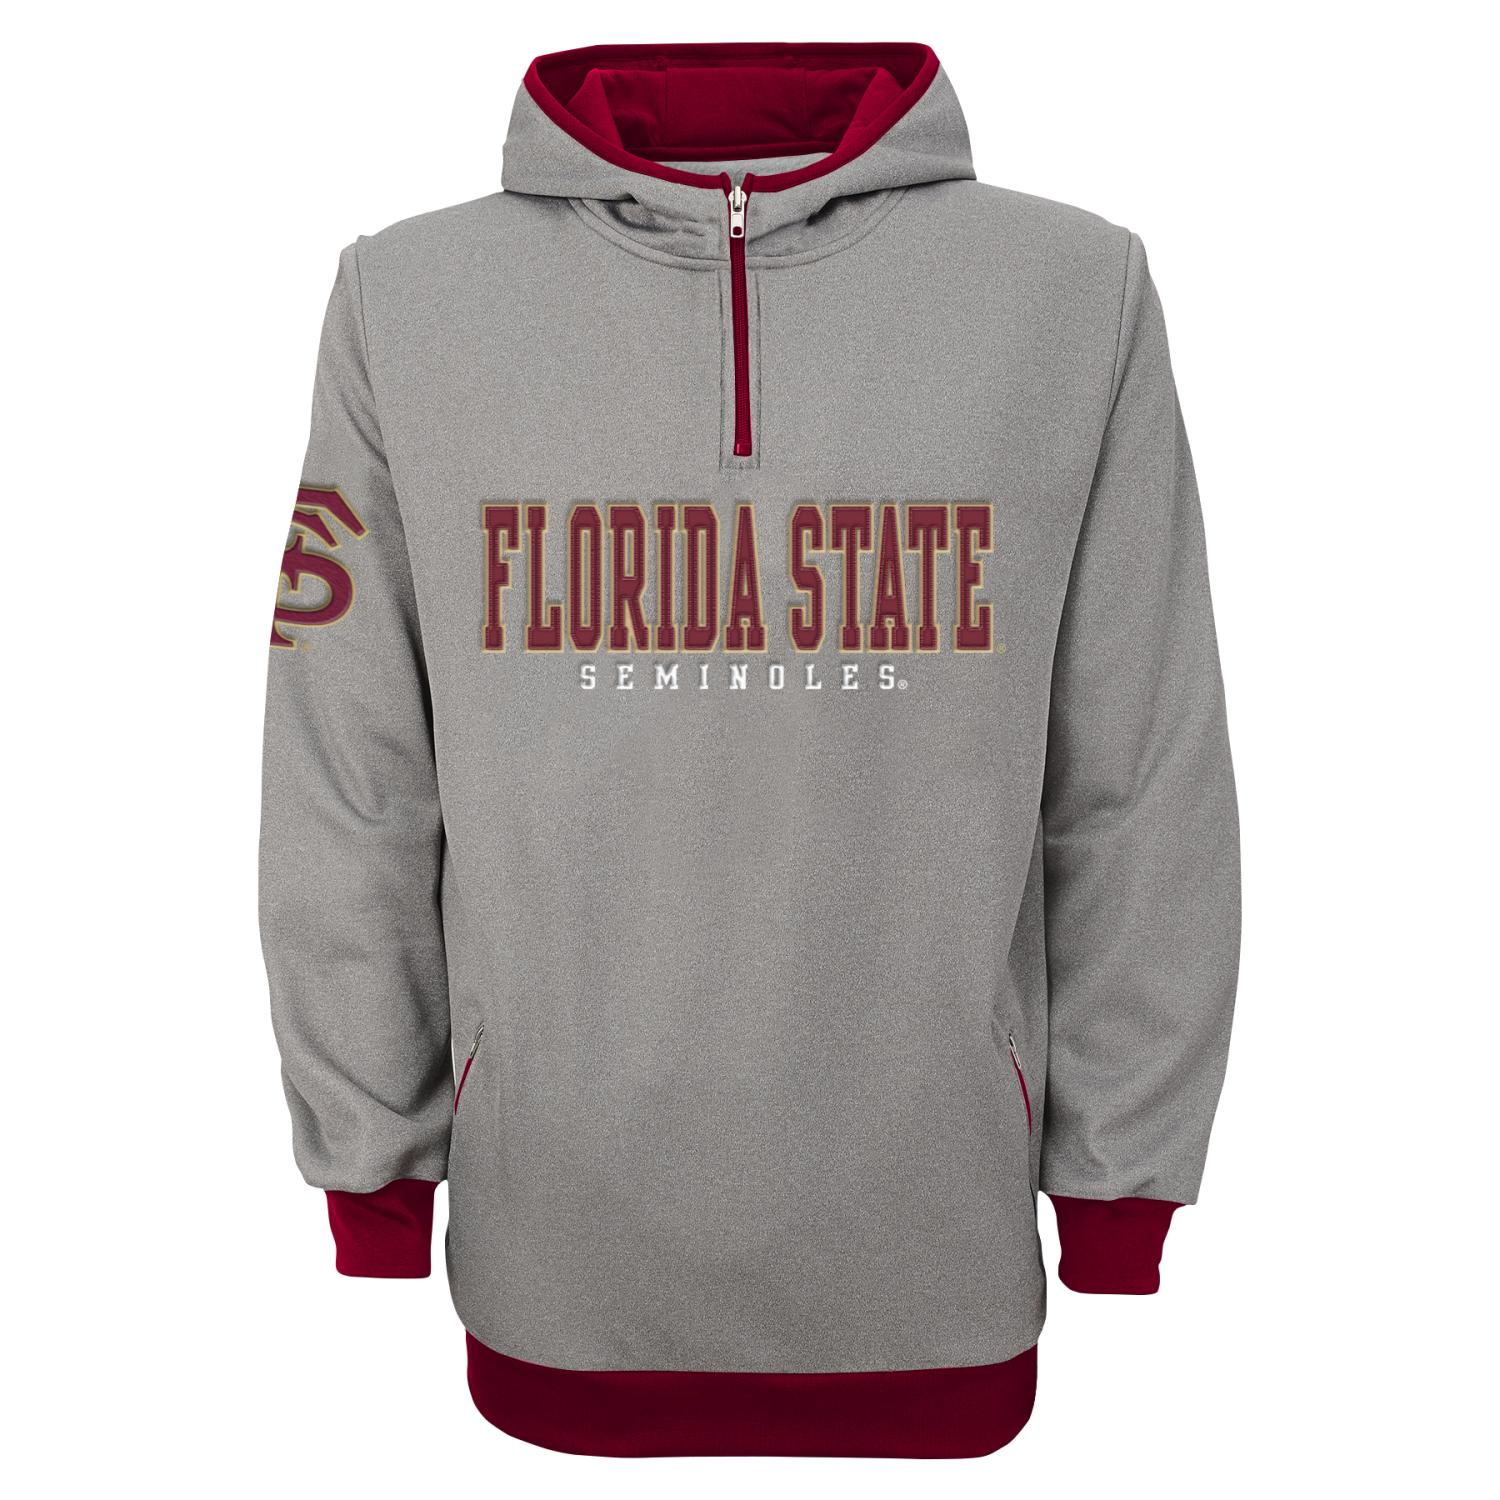 Florida State Seminoles Quarter Zip Hooded Track Jacket M by Gen2